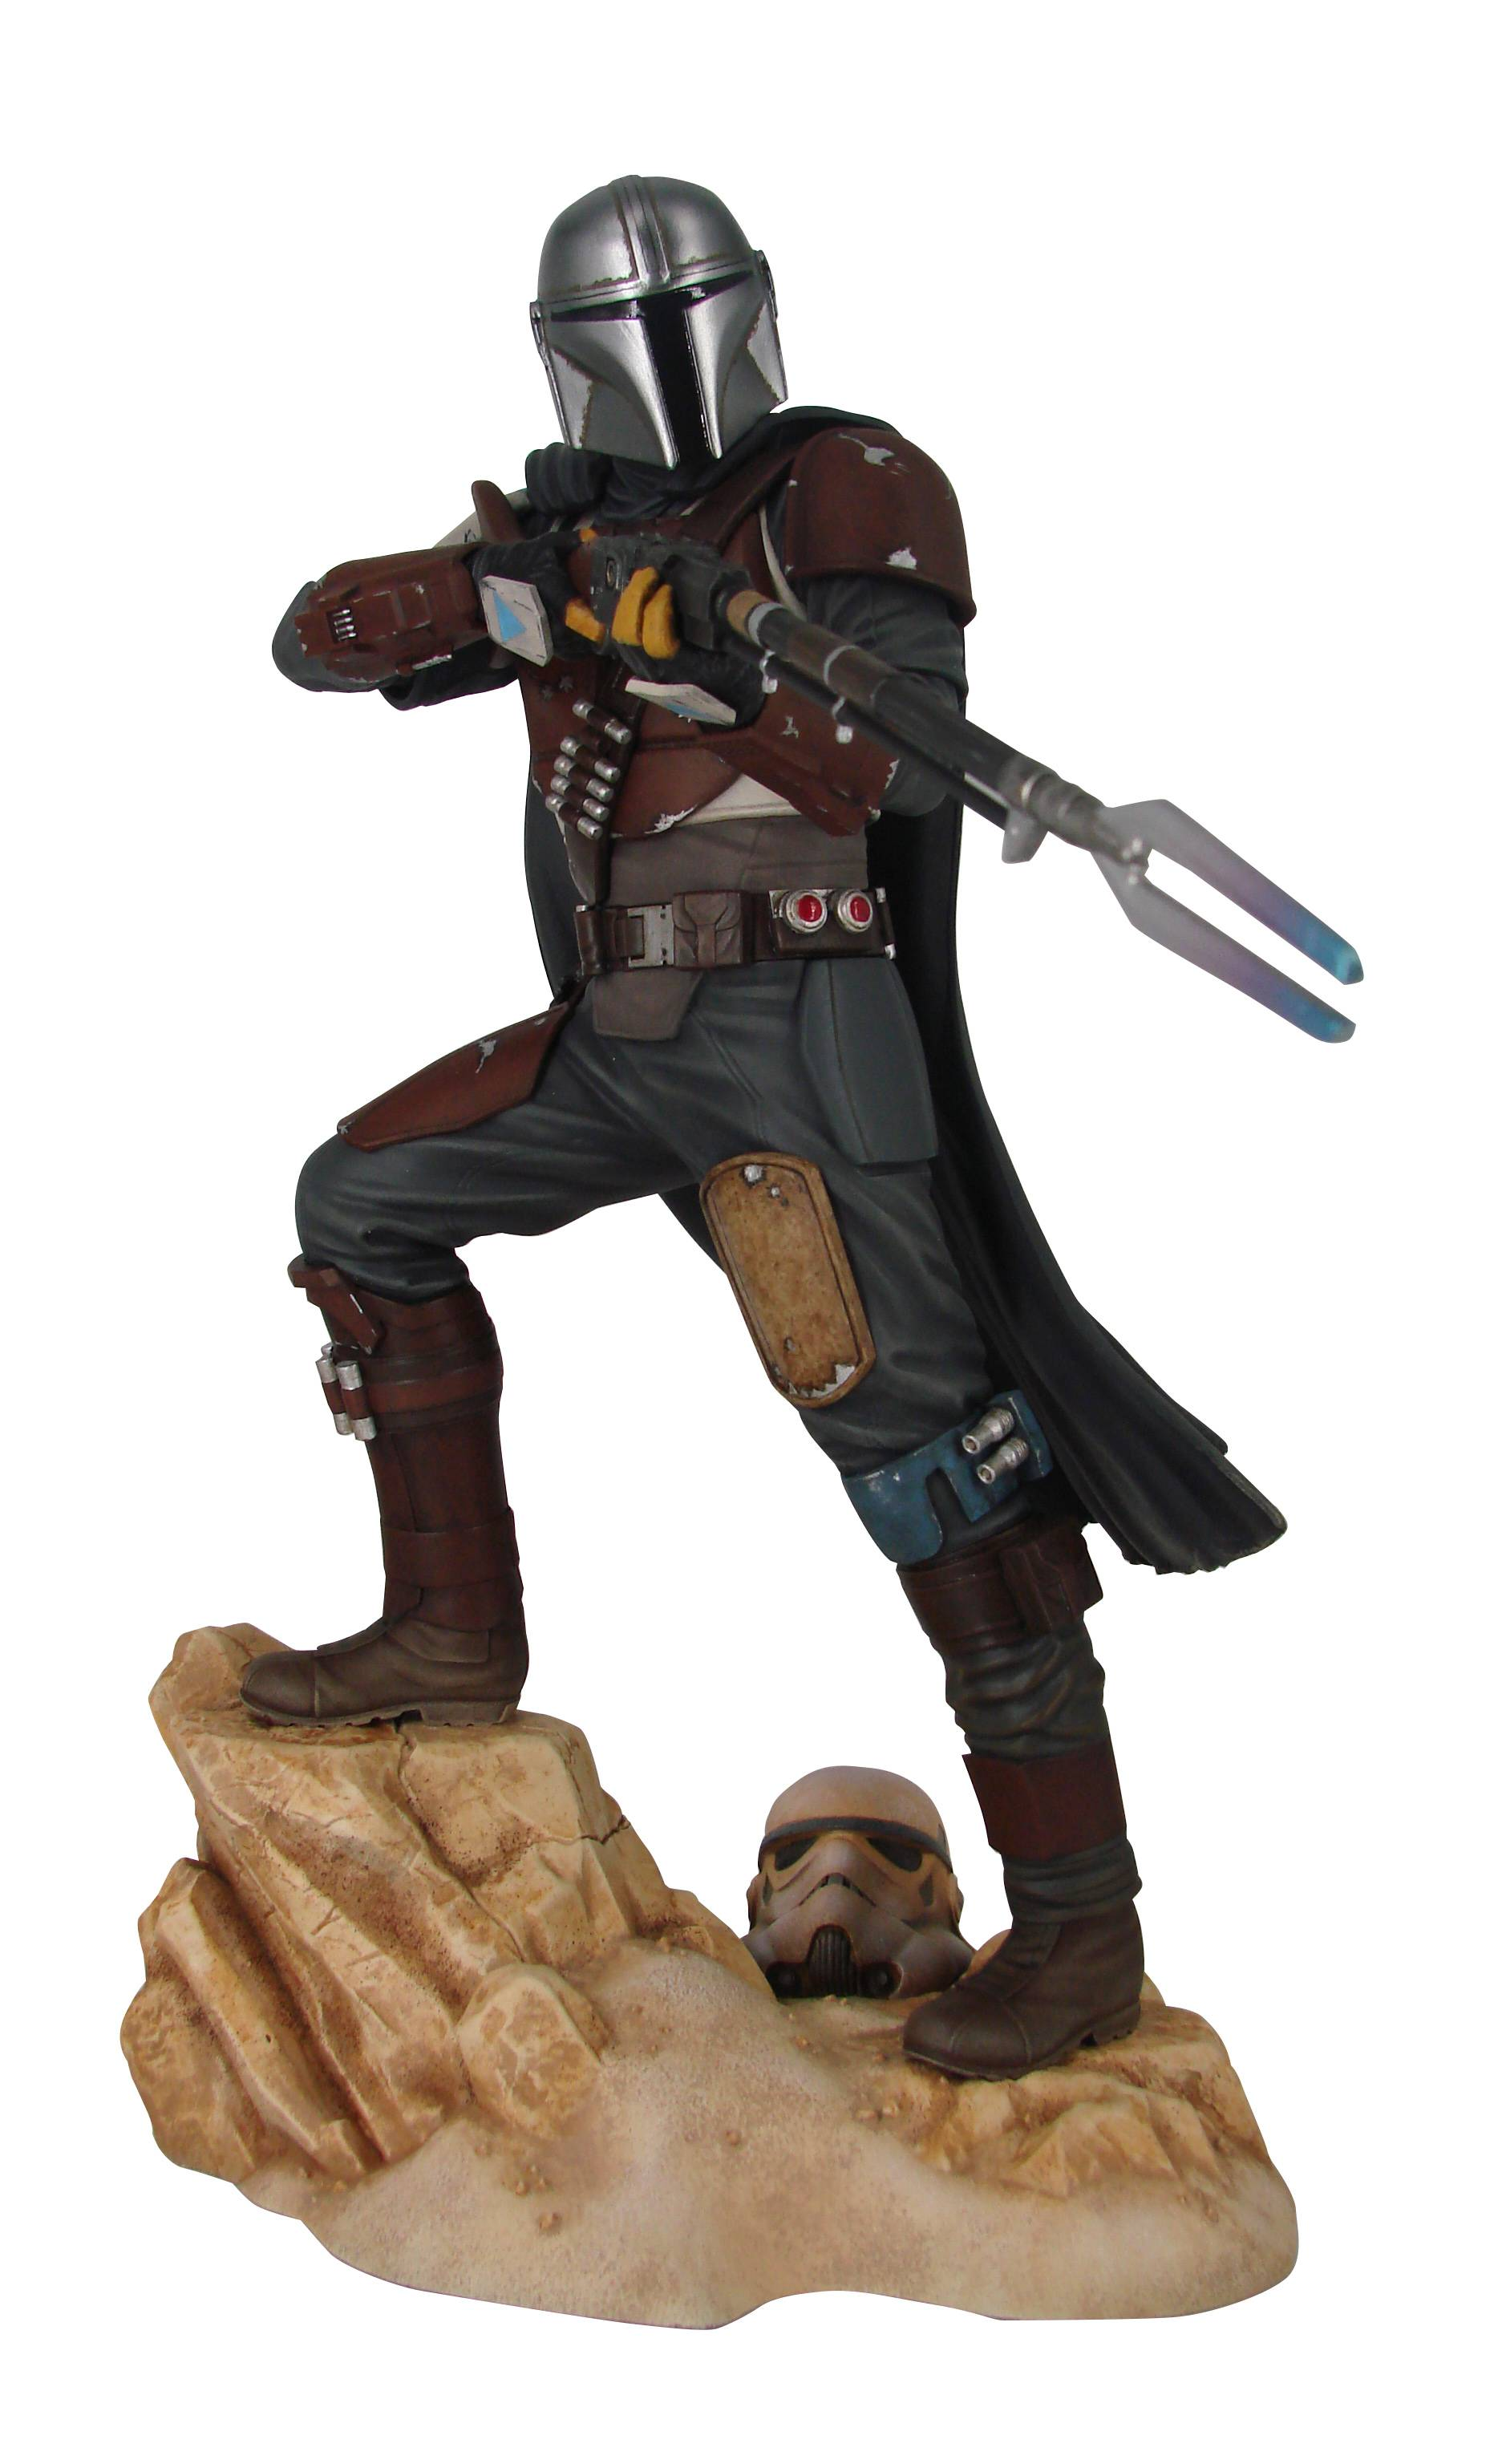 STAR WARS PREMIER COLLECTION THE MANDALORIAN MK1 STATUE (O/A